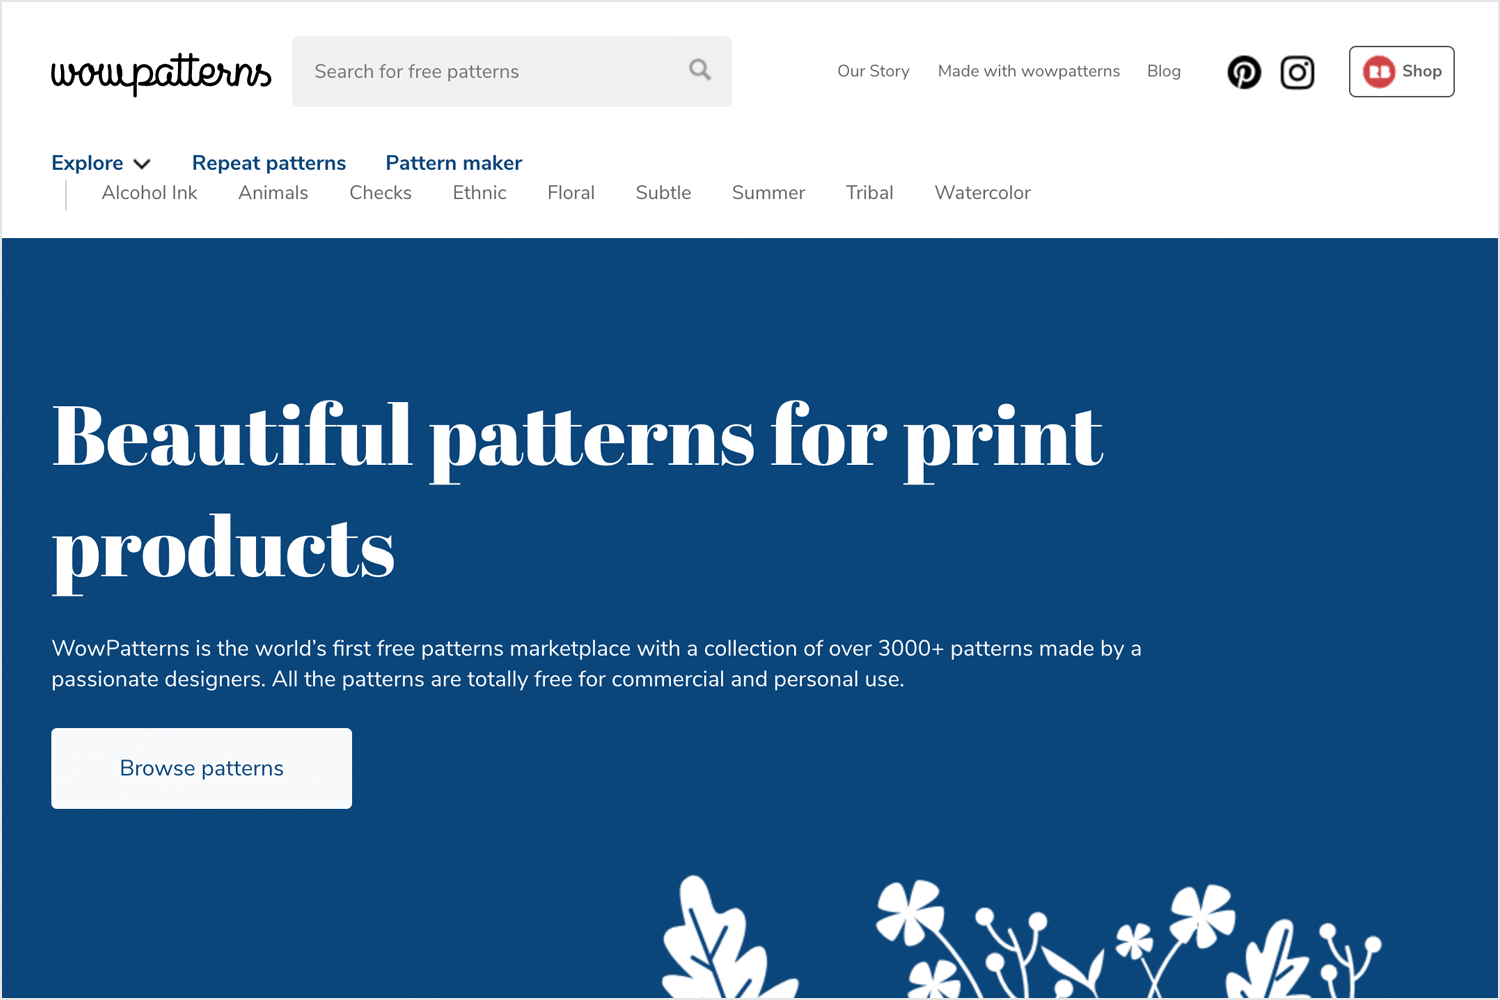 wow patterns as place for free vector illustrations and patterns